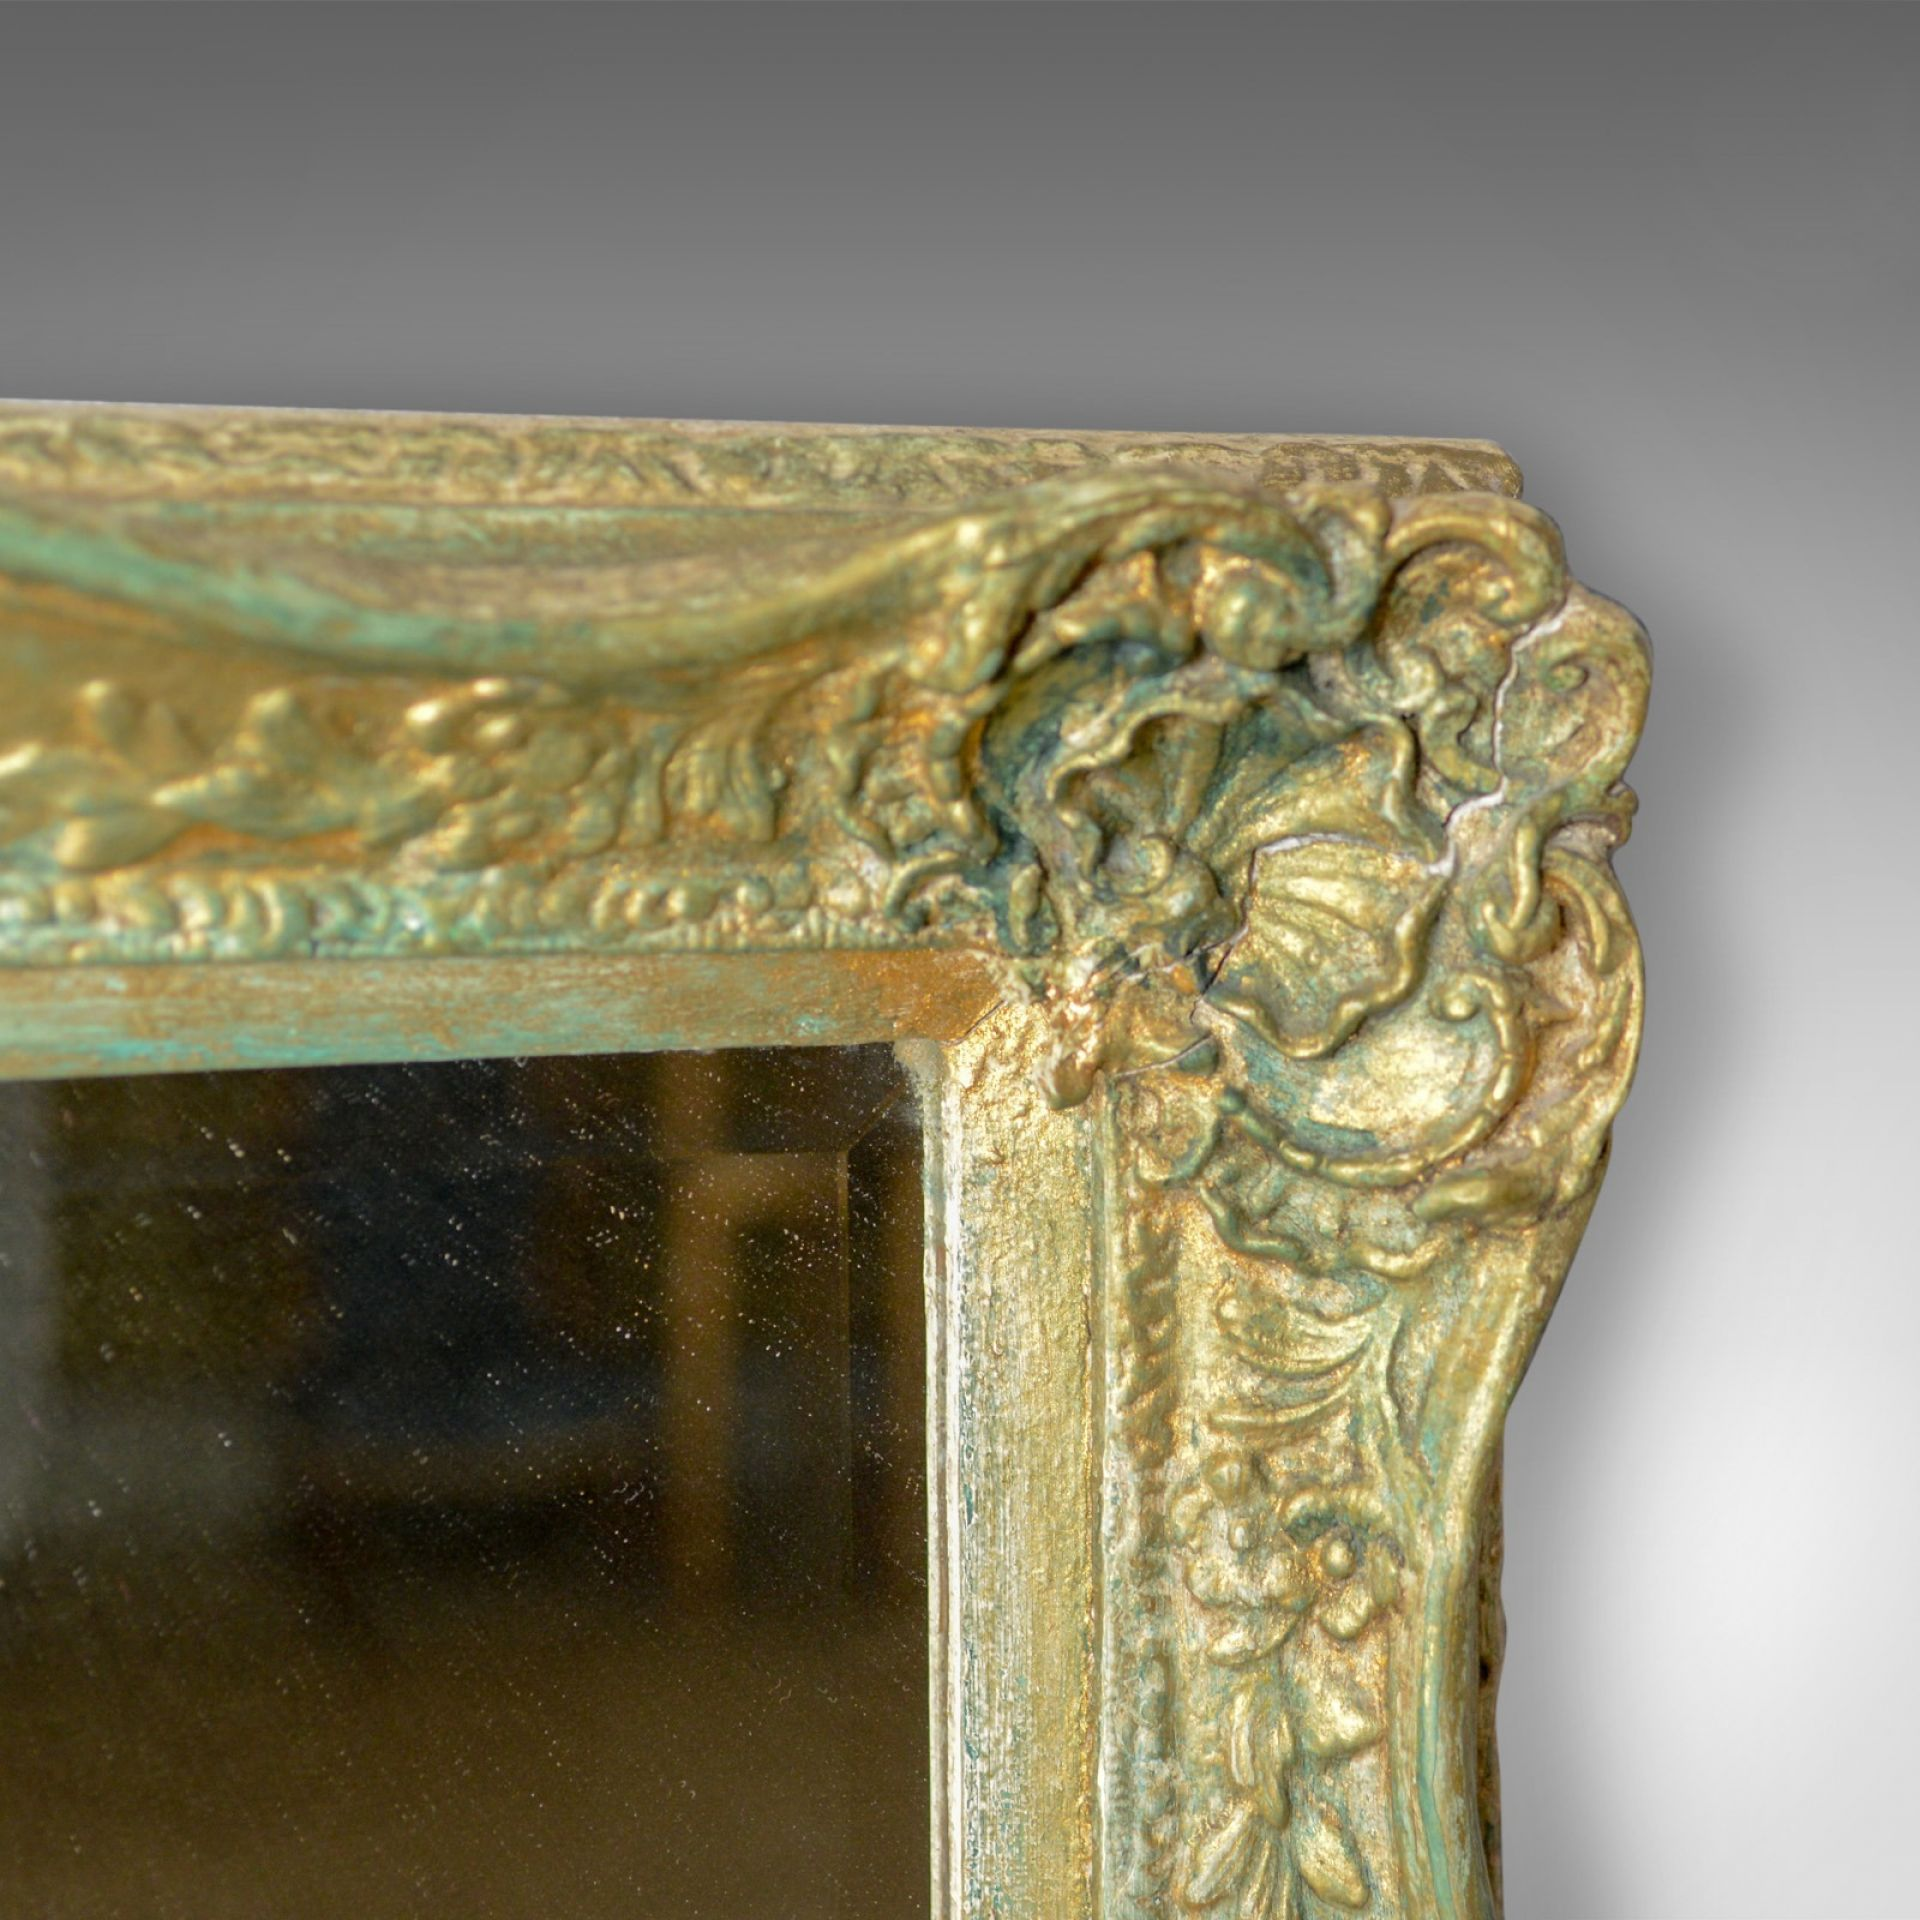 Antique Wall Mirror, Victorian, Painted Gilt Gesso Frame, Classical Taste c.1890